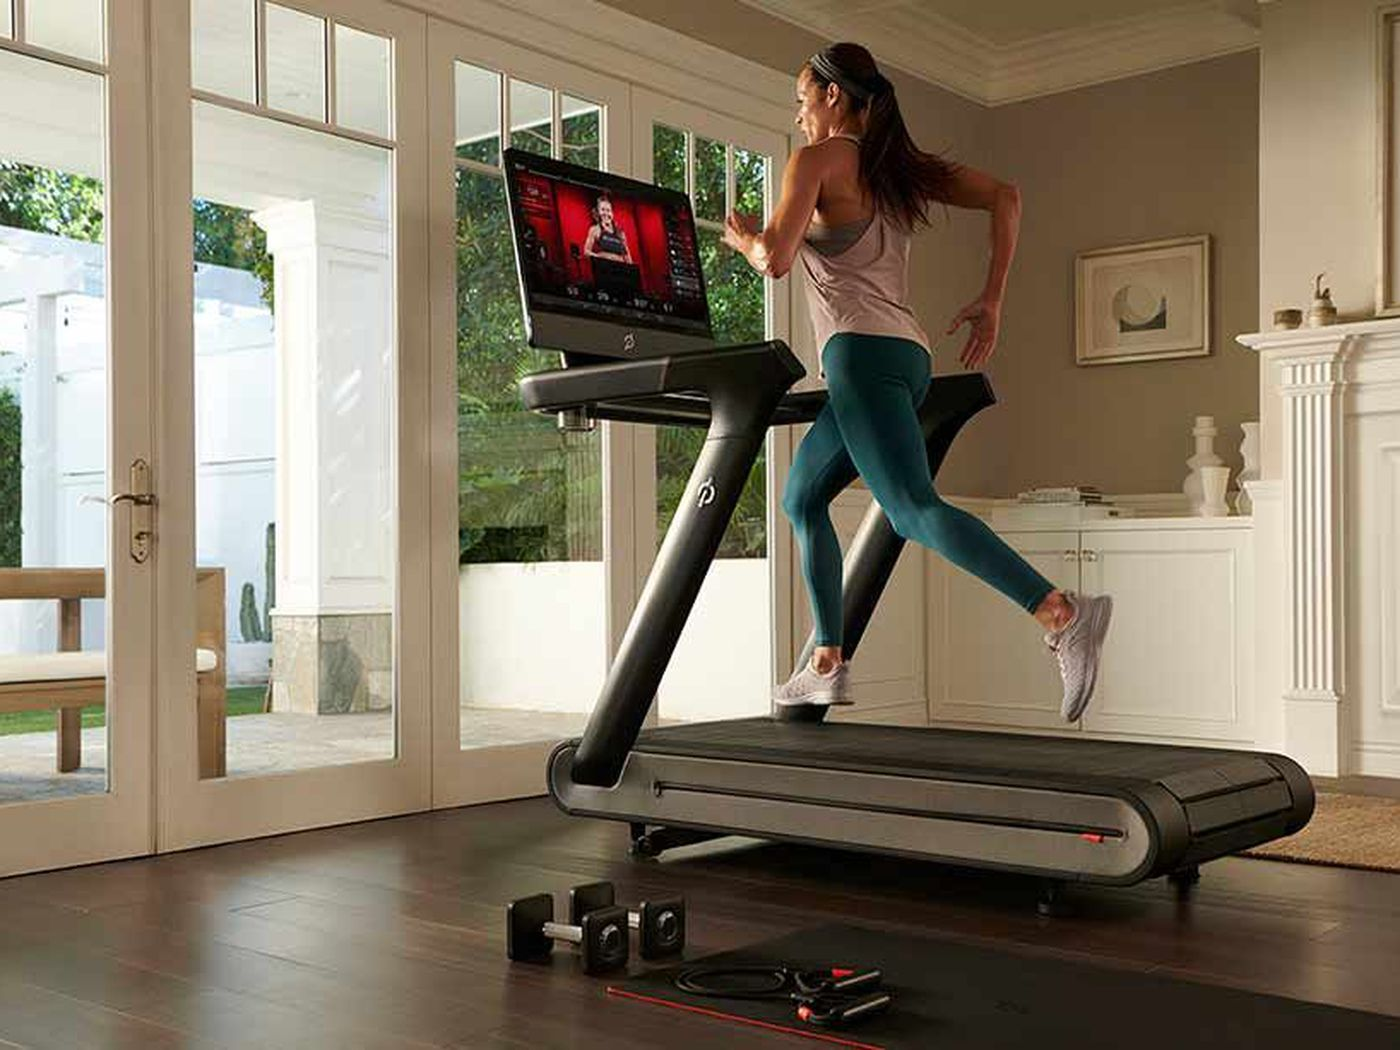 Peloton Is Reportedly Planning A Cheaper New Treadmill To Keep Home Workouts On Track The Verge